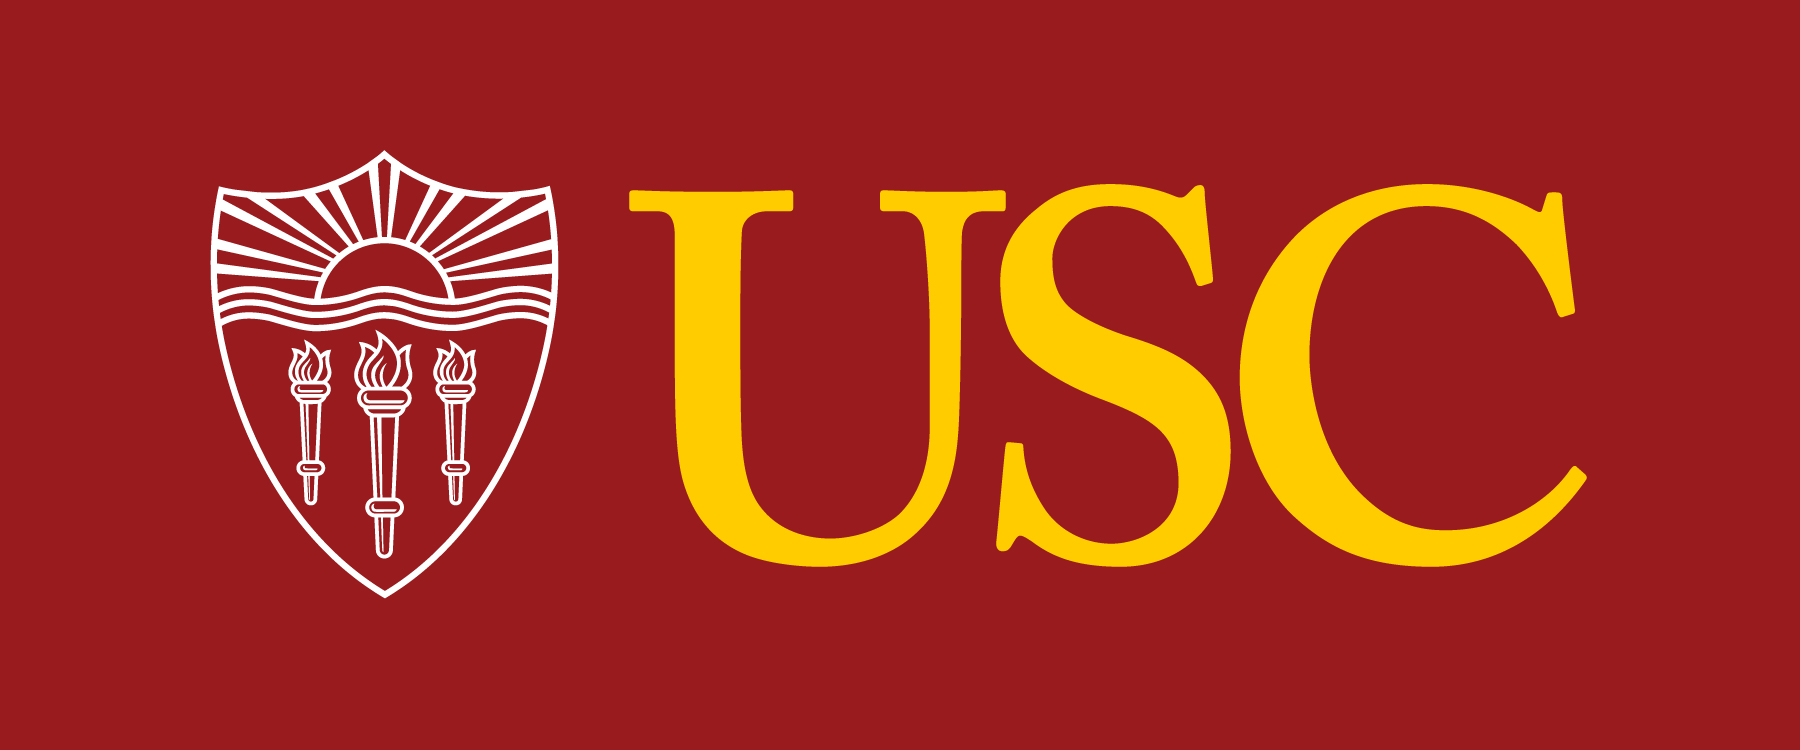 University of Southern California profile image